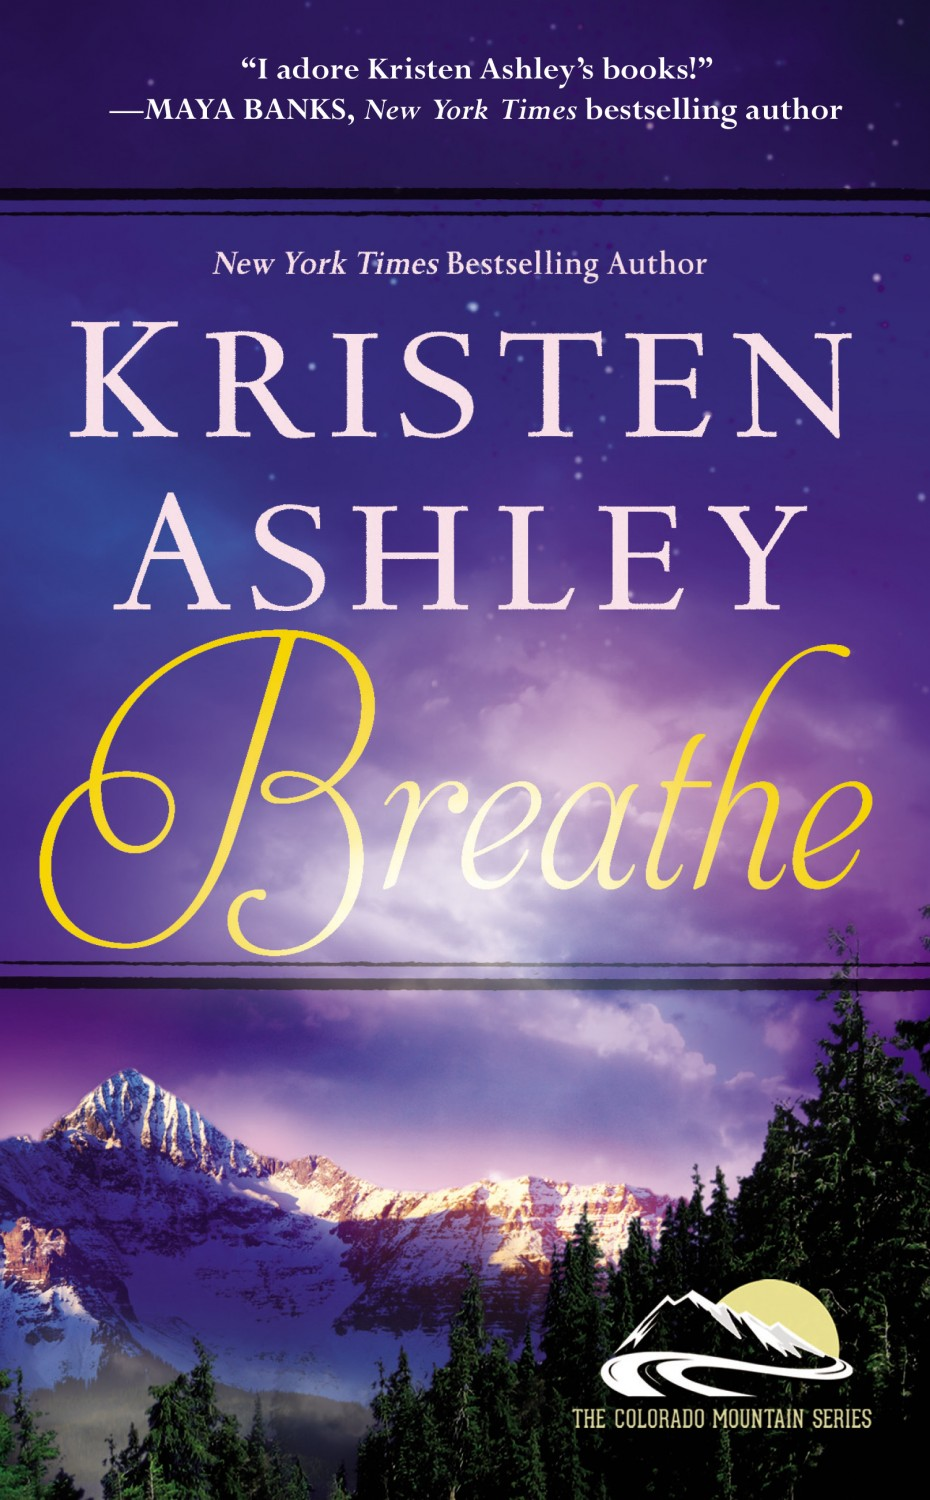 Ashley_Breathe_MM